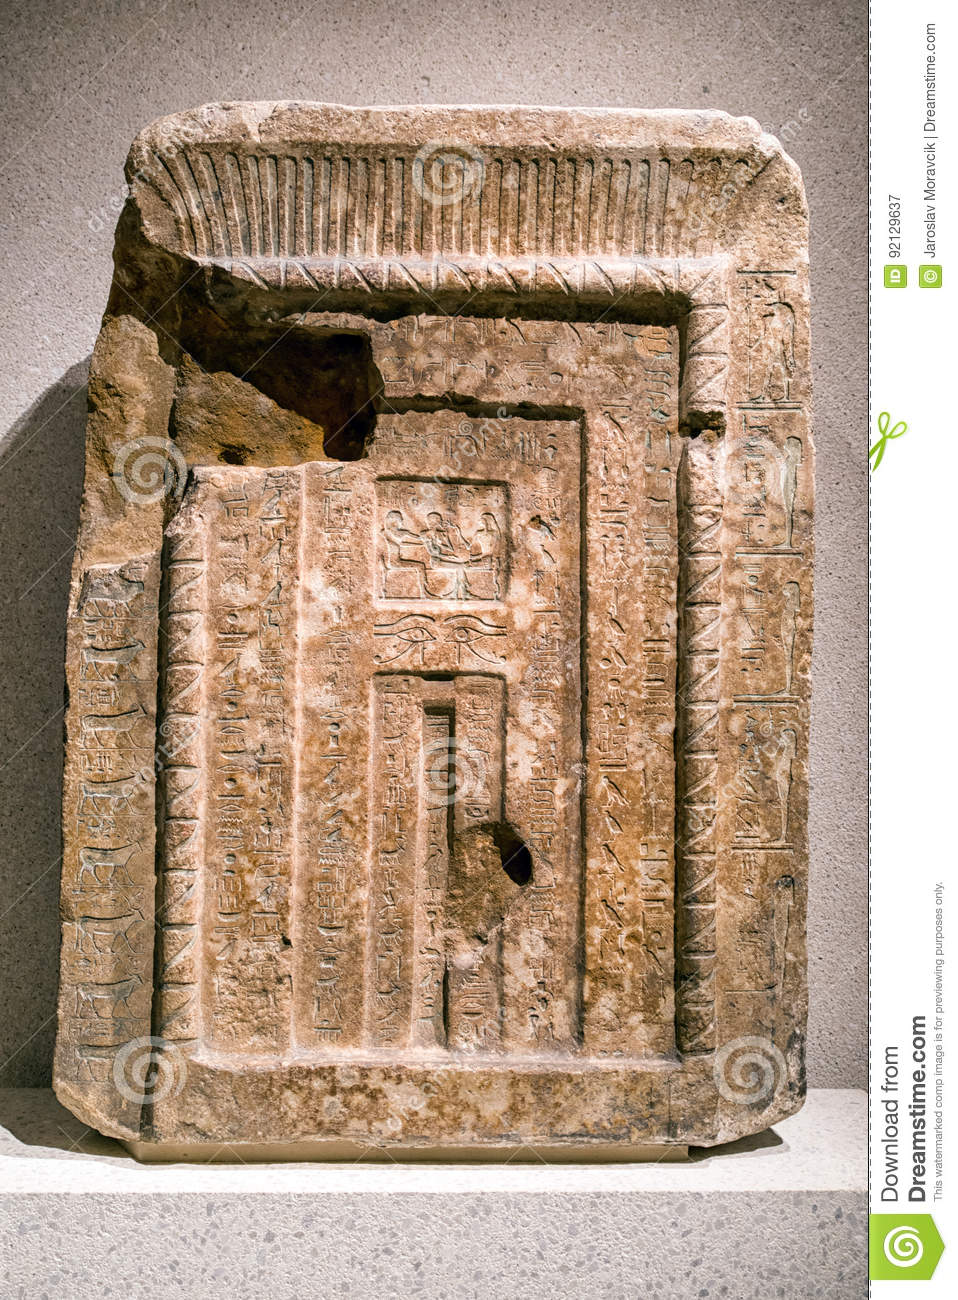 False door of Senenmut steward of queen Hatschepsut in Egyptian & False Door Of Senenmut Steward Of Queen Hatschepsut In Egyptian ...